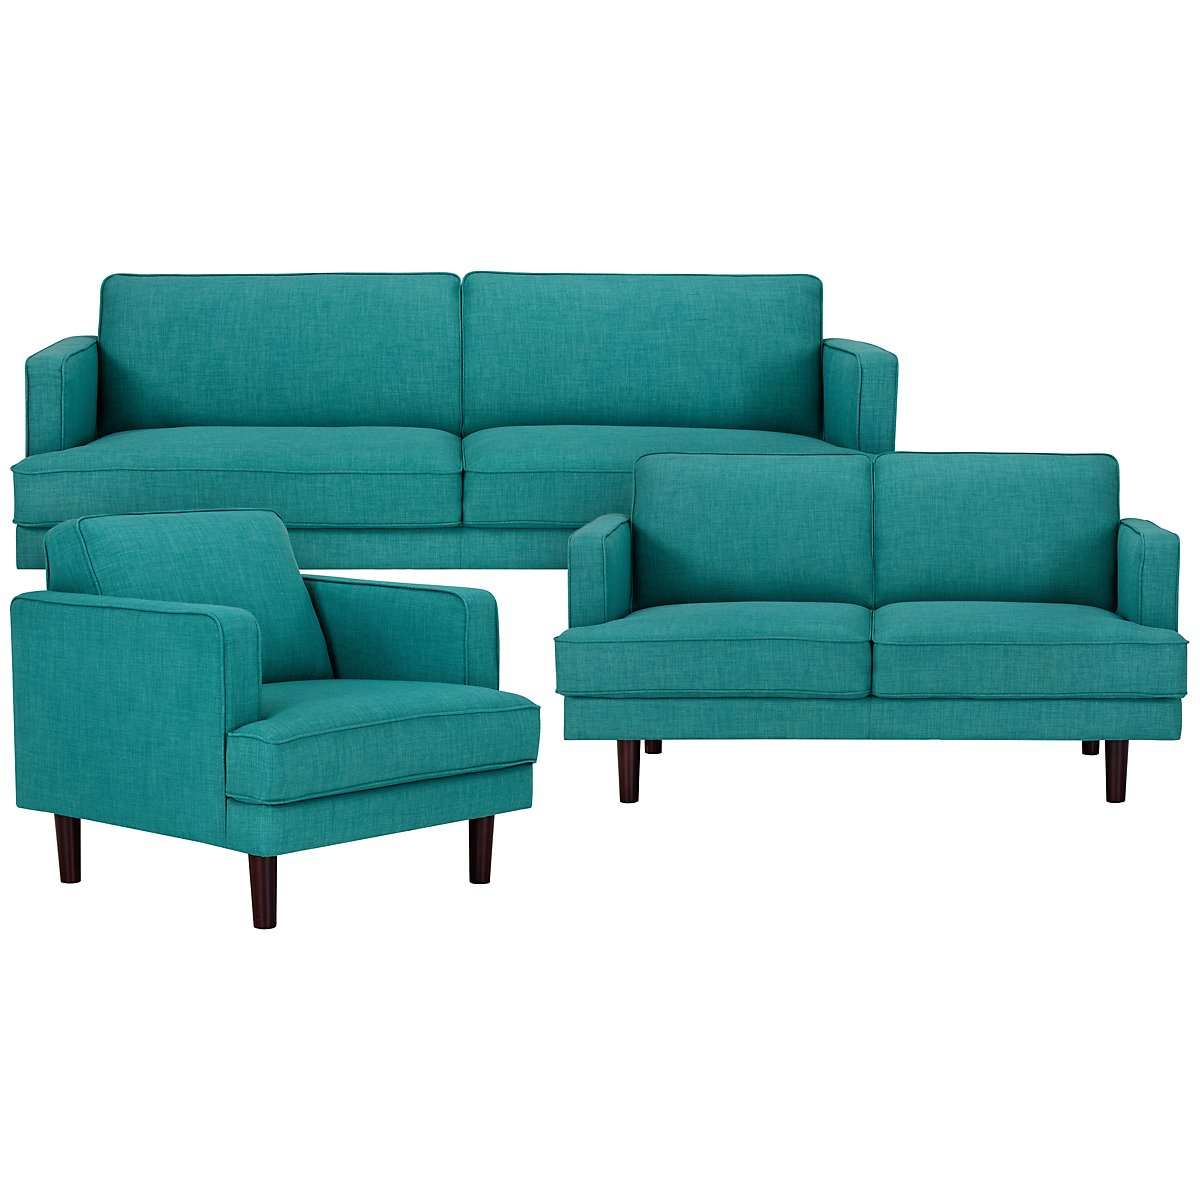 Teal Living Room Chair City Furniture Bliss Teal Living Room